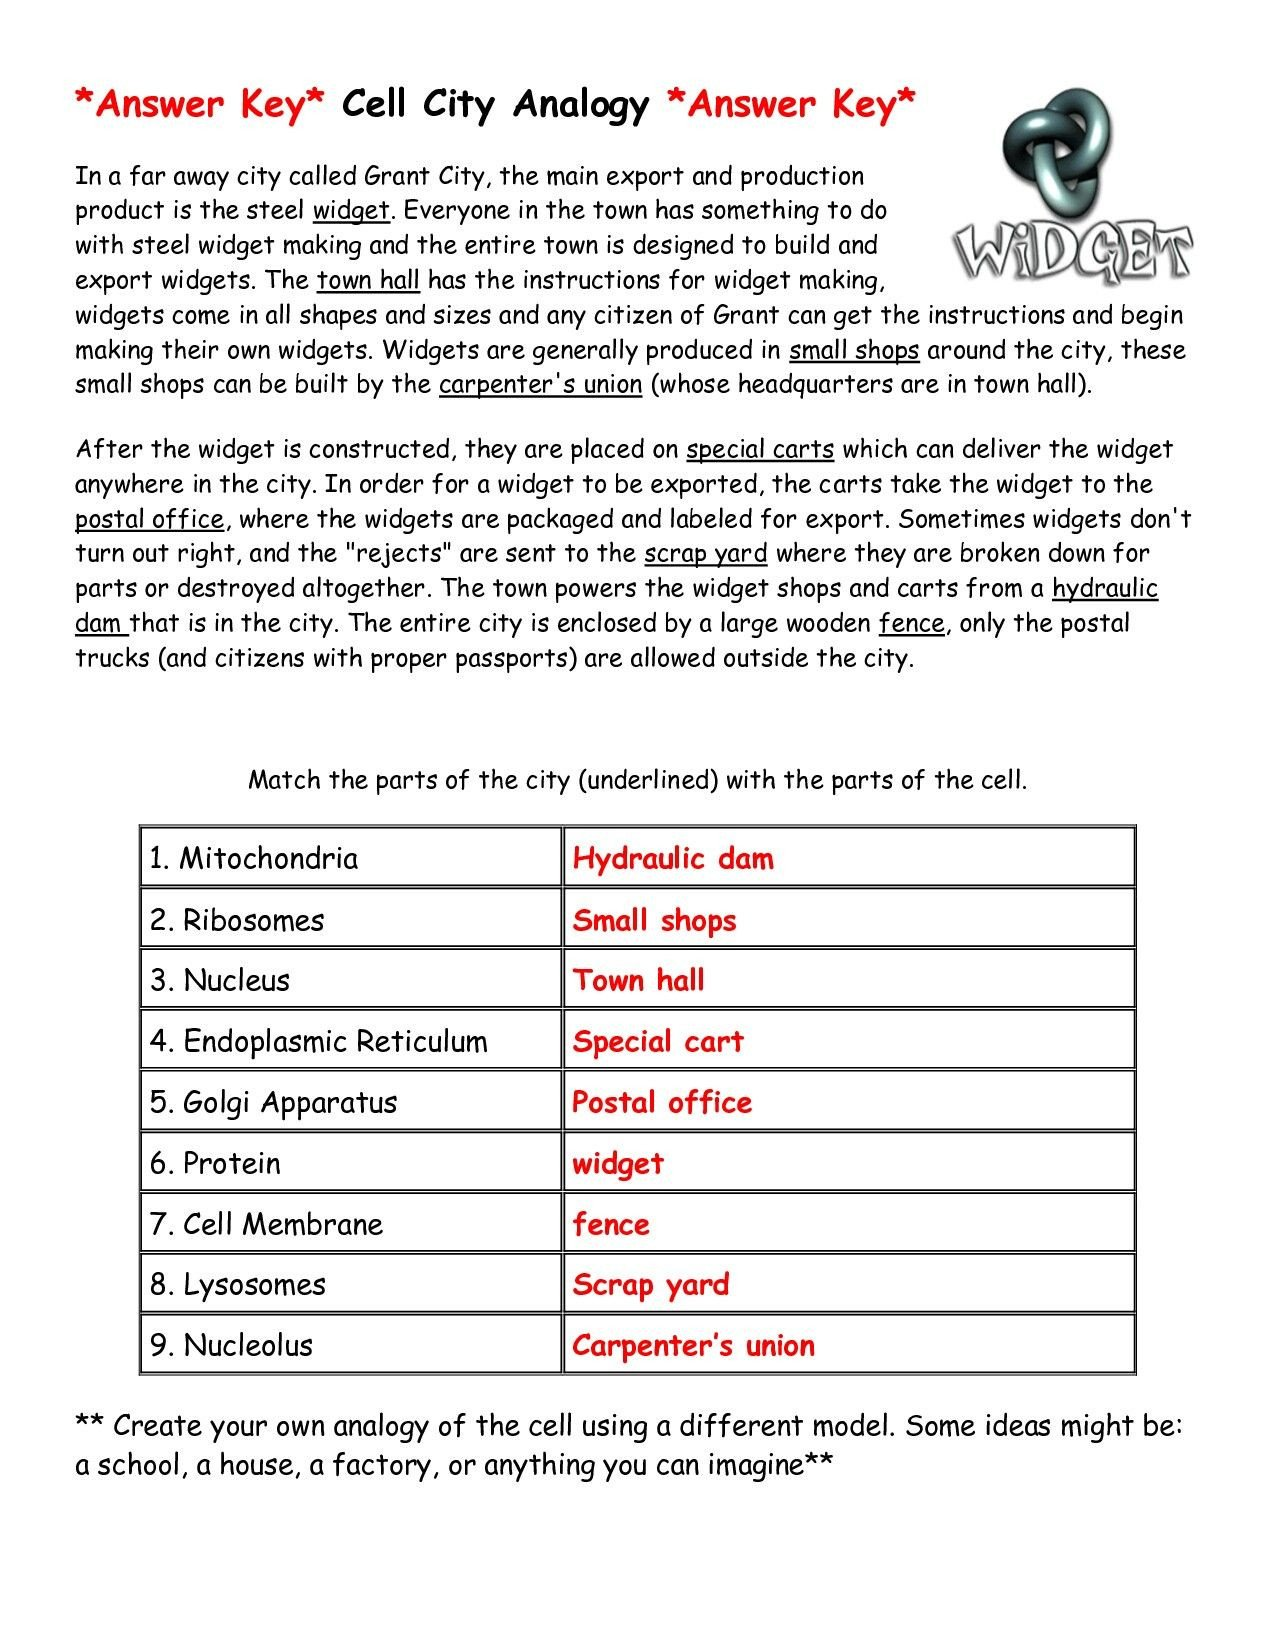 Analogy Worksheets for Middle School Pin by Trampakoulas Xaralampos On Cell City